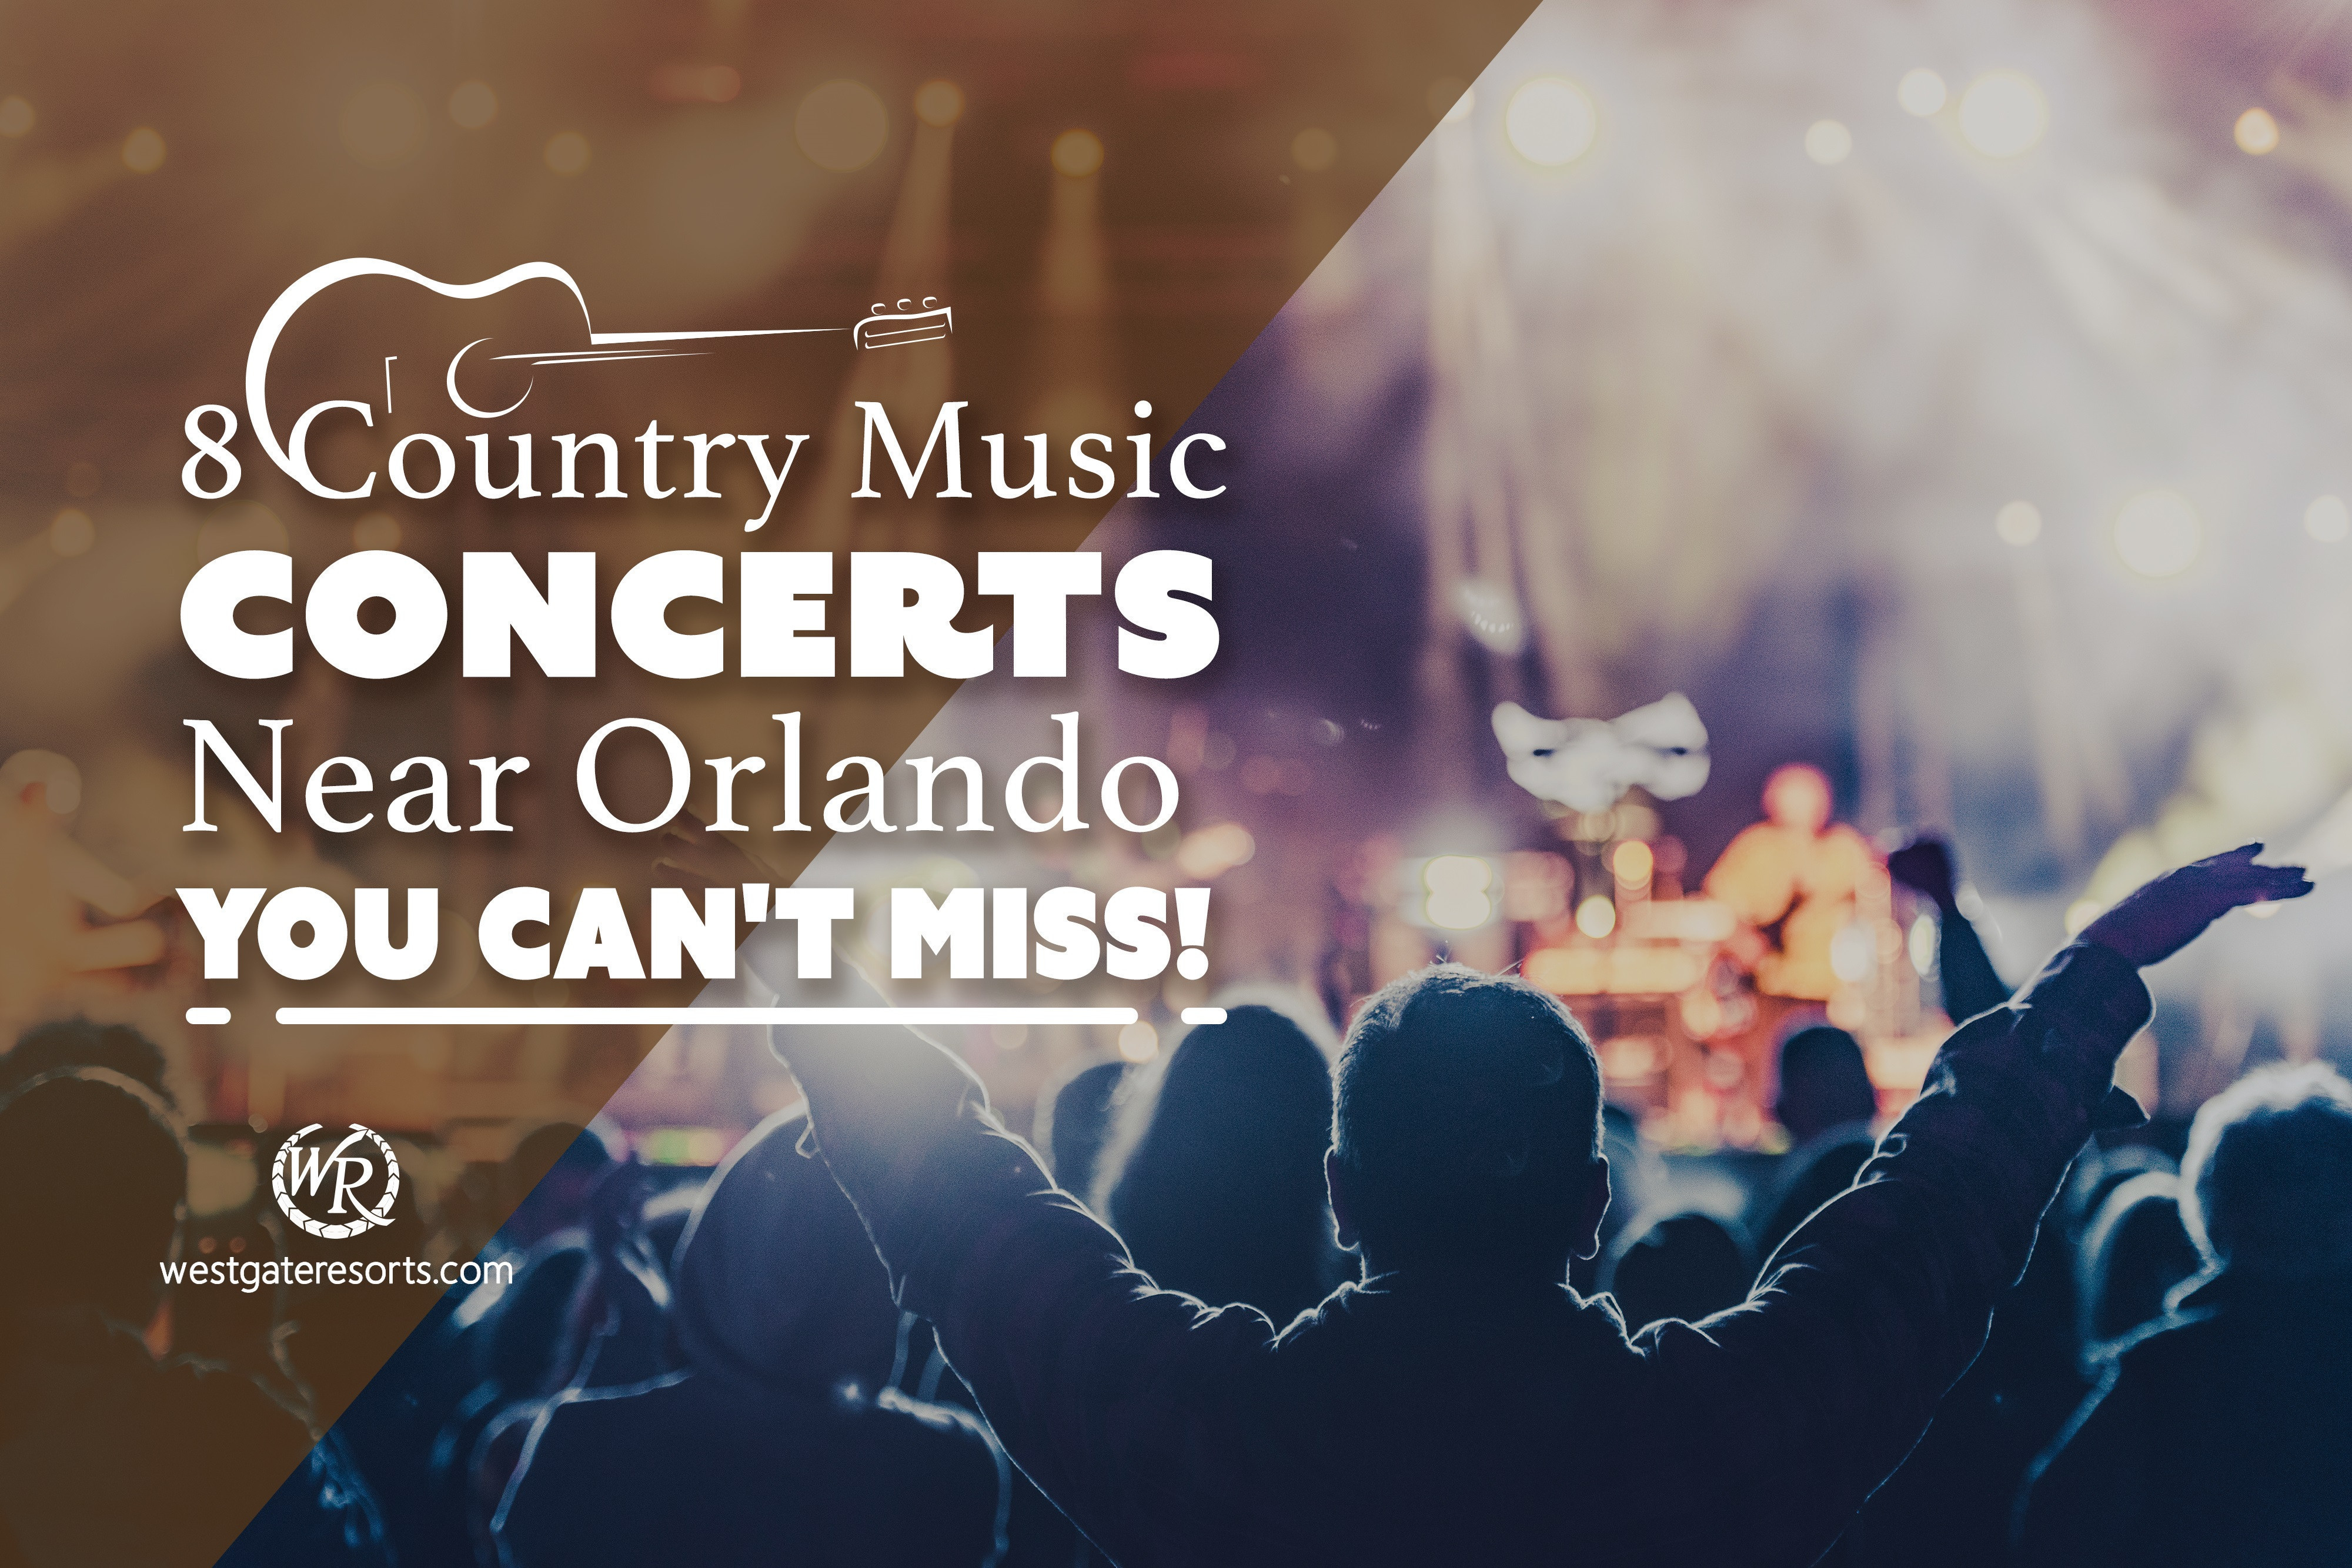 8 Country Music Concerts Near Orlando You Can't Miss!